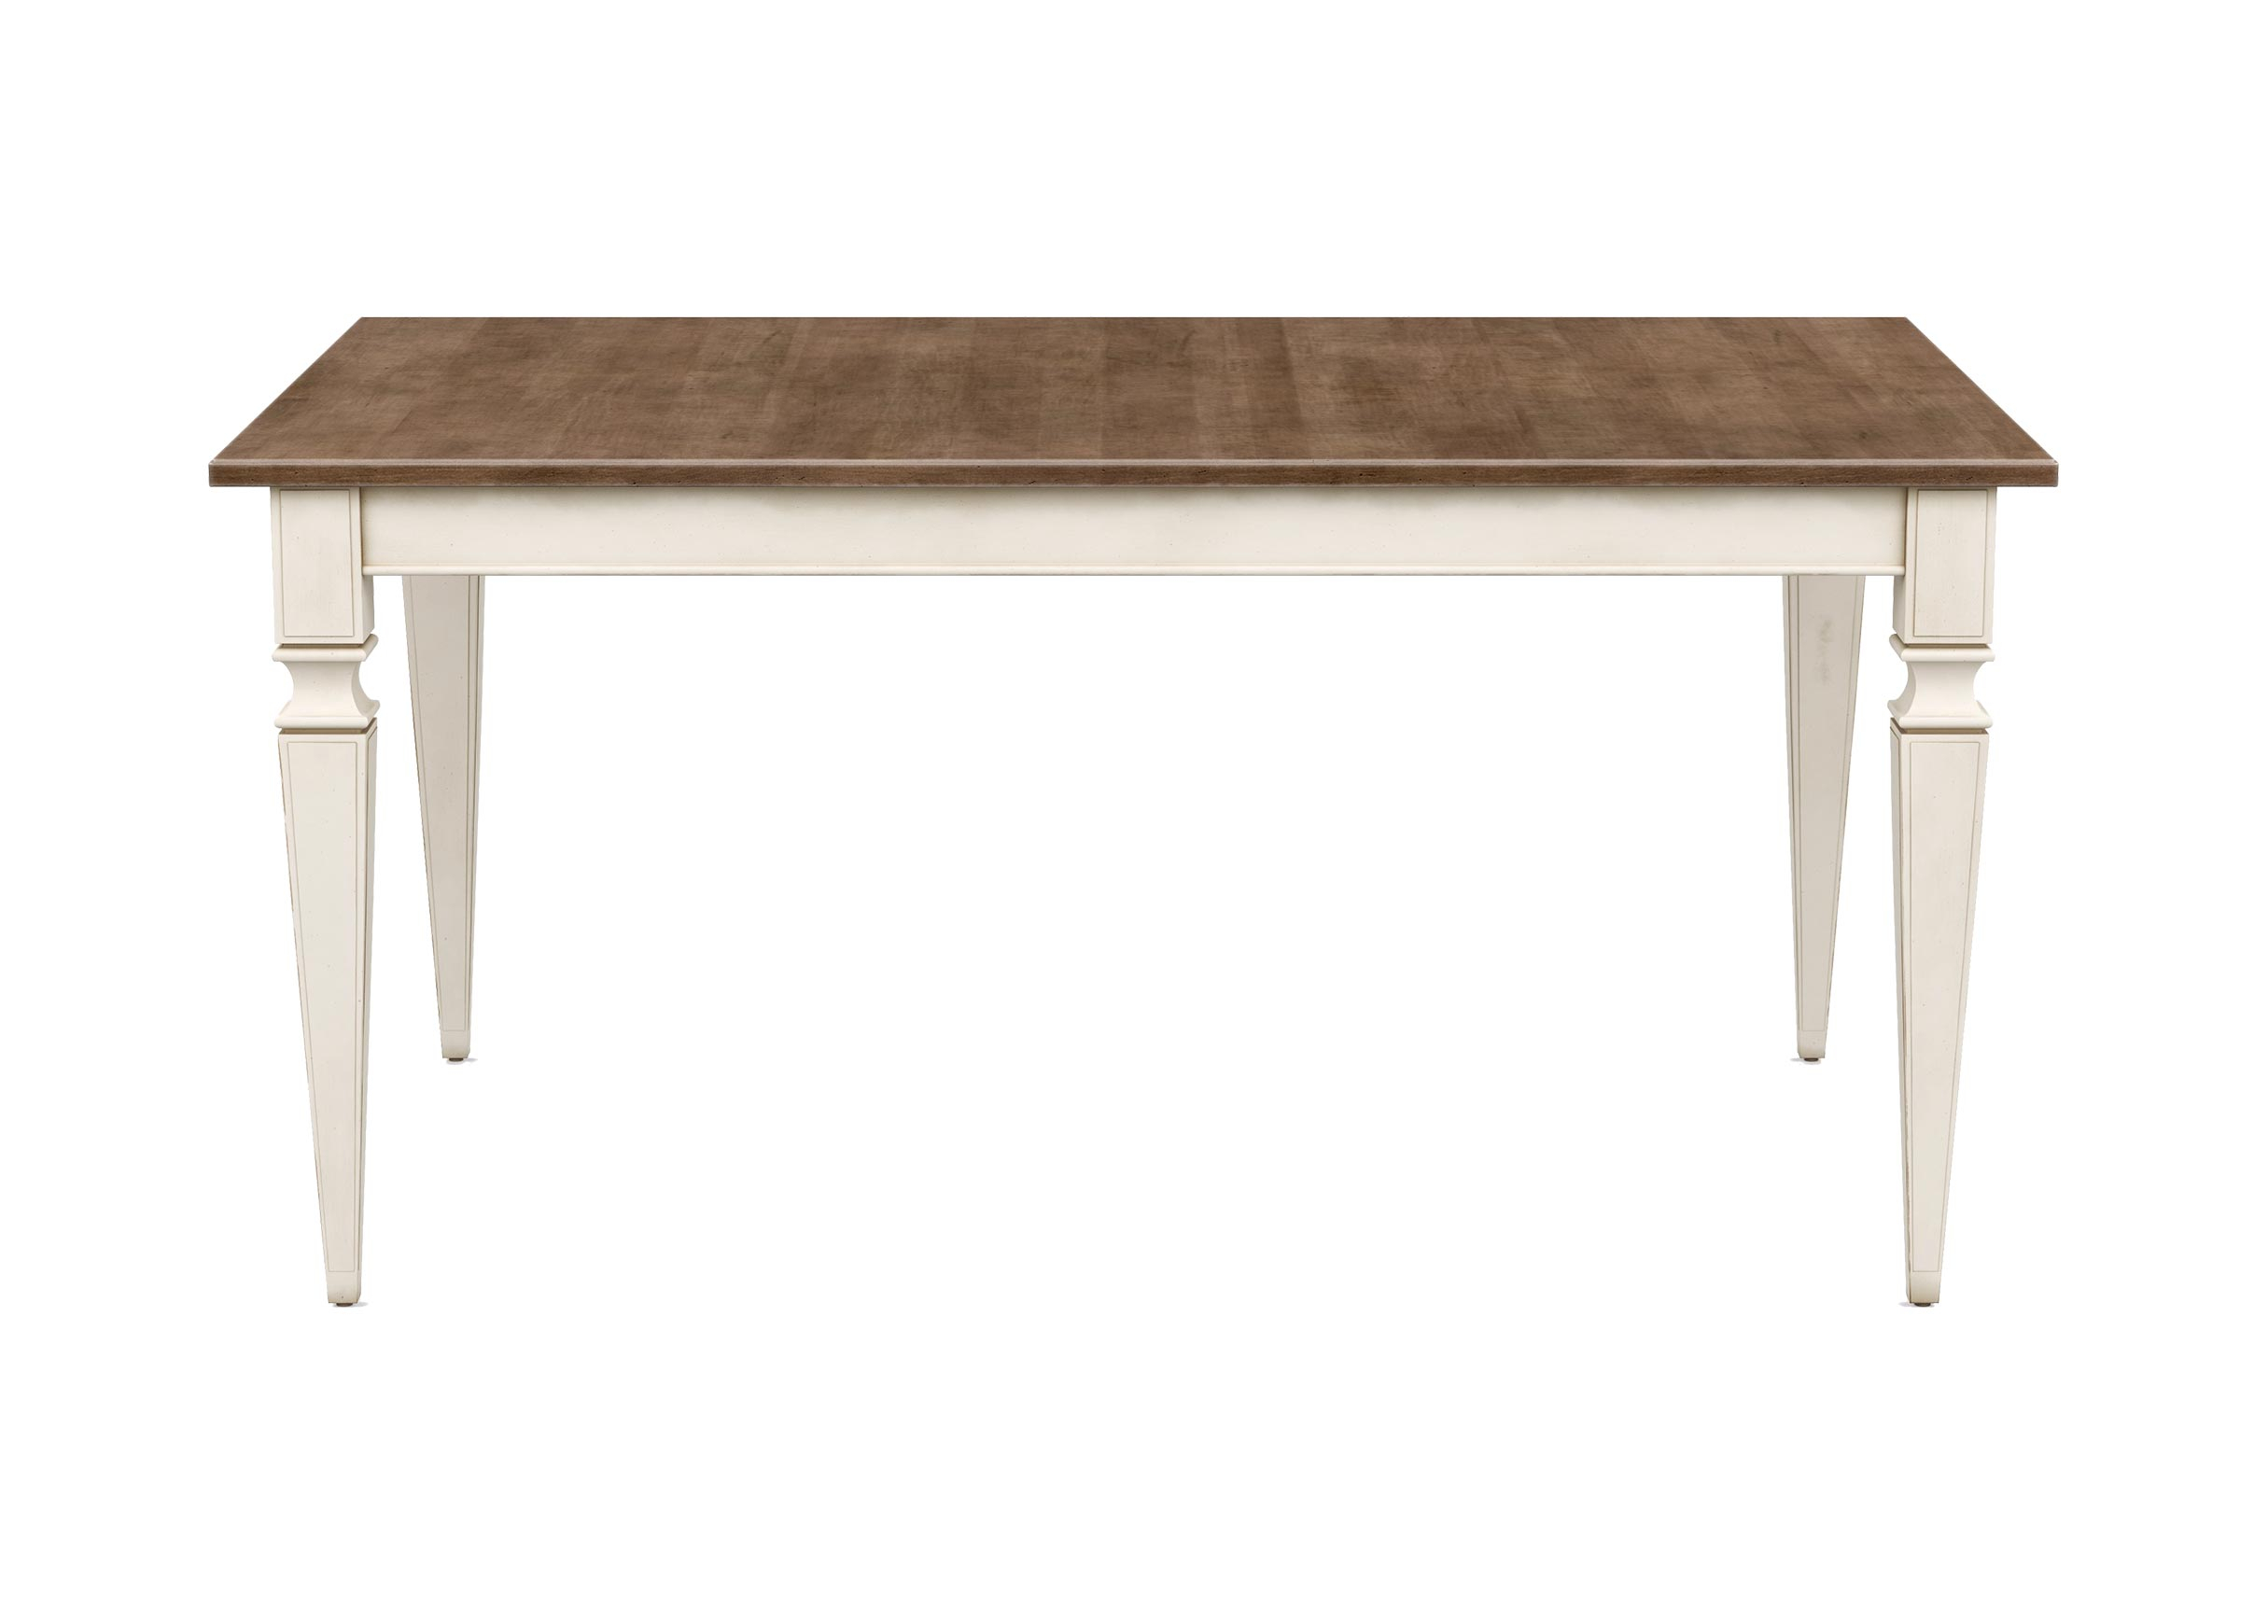 Avery Small Dining Table   Dining Tables   Ethan Allen Intended For Newest Avery Rectangular Dining Tables (View 3 of 25)